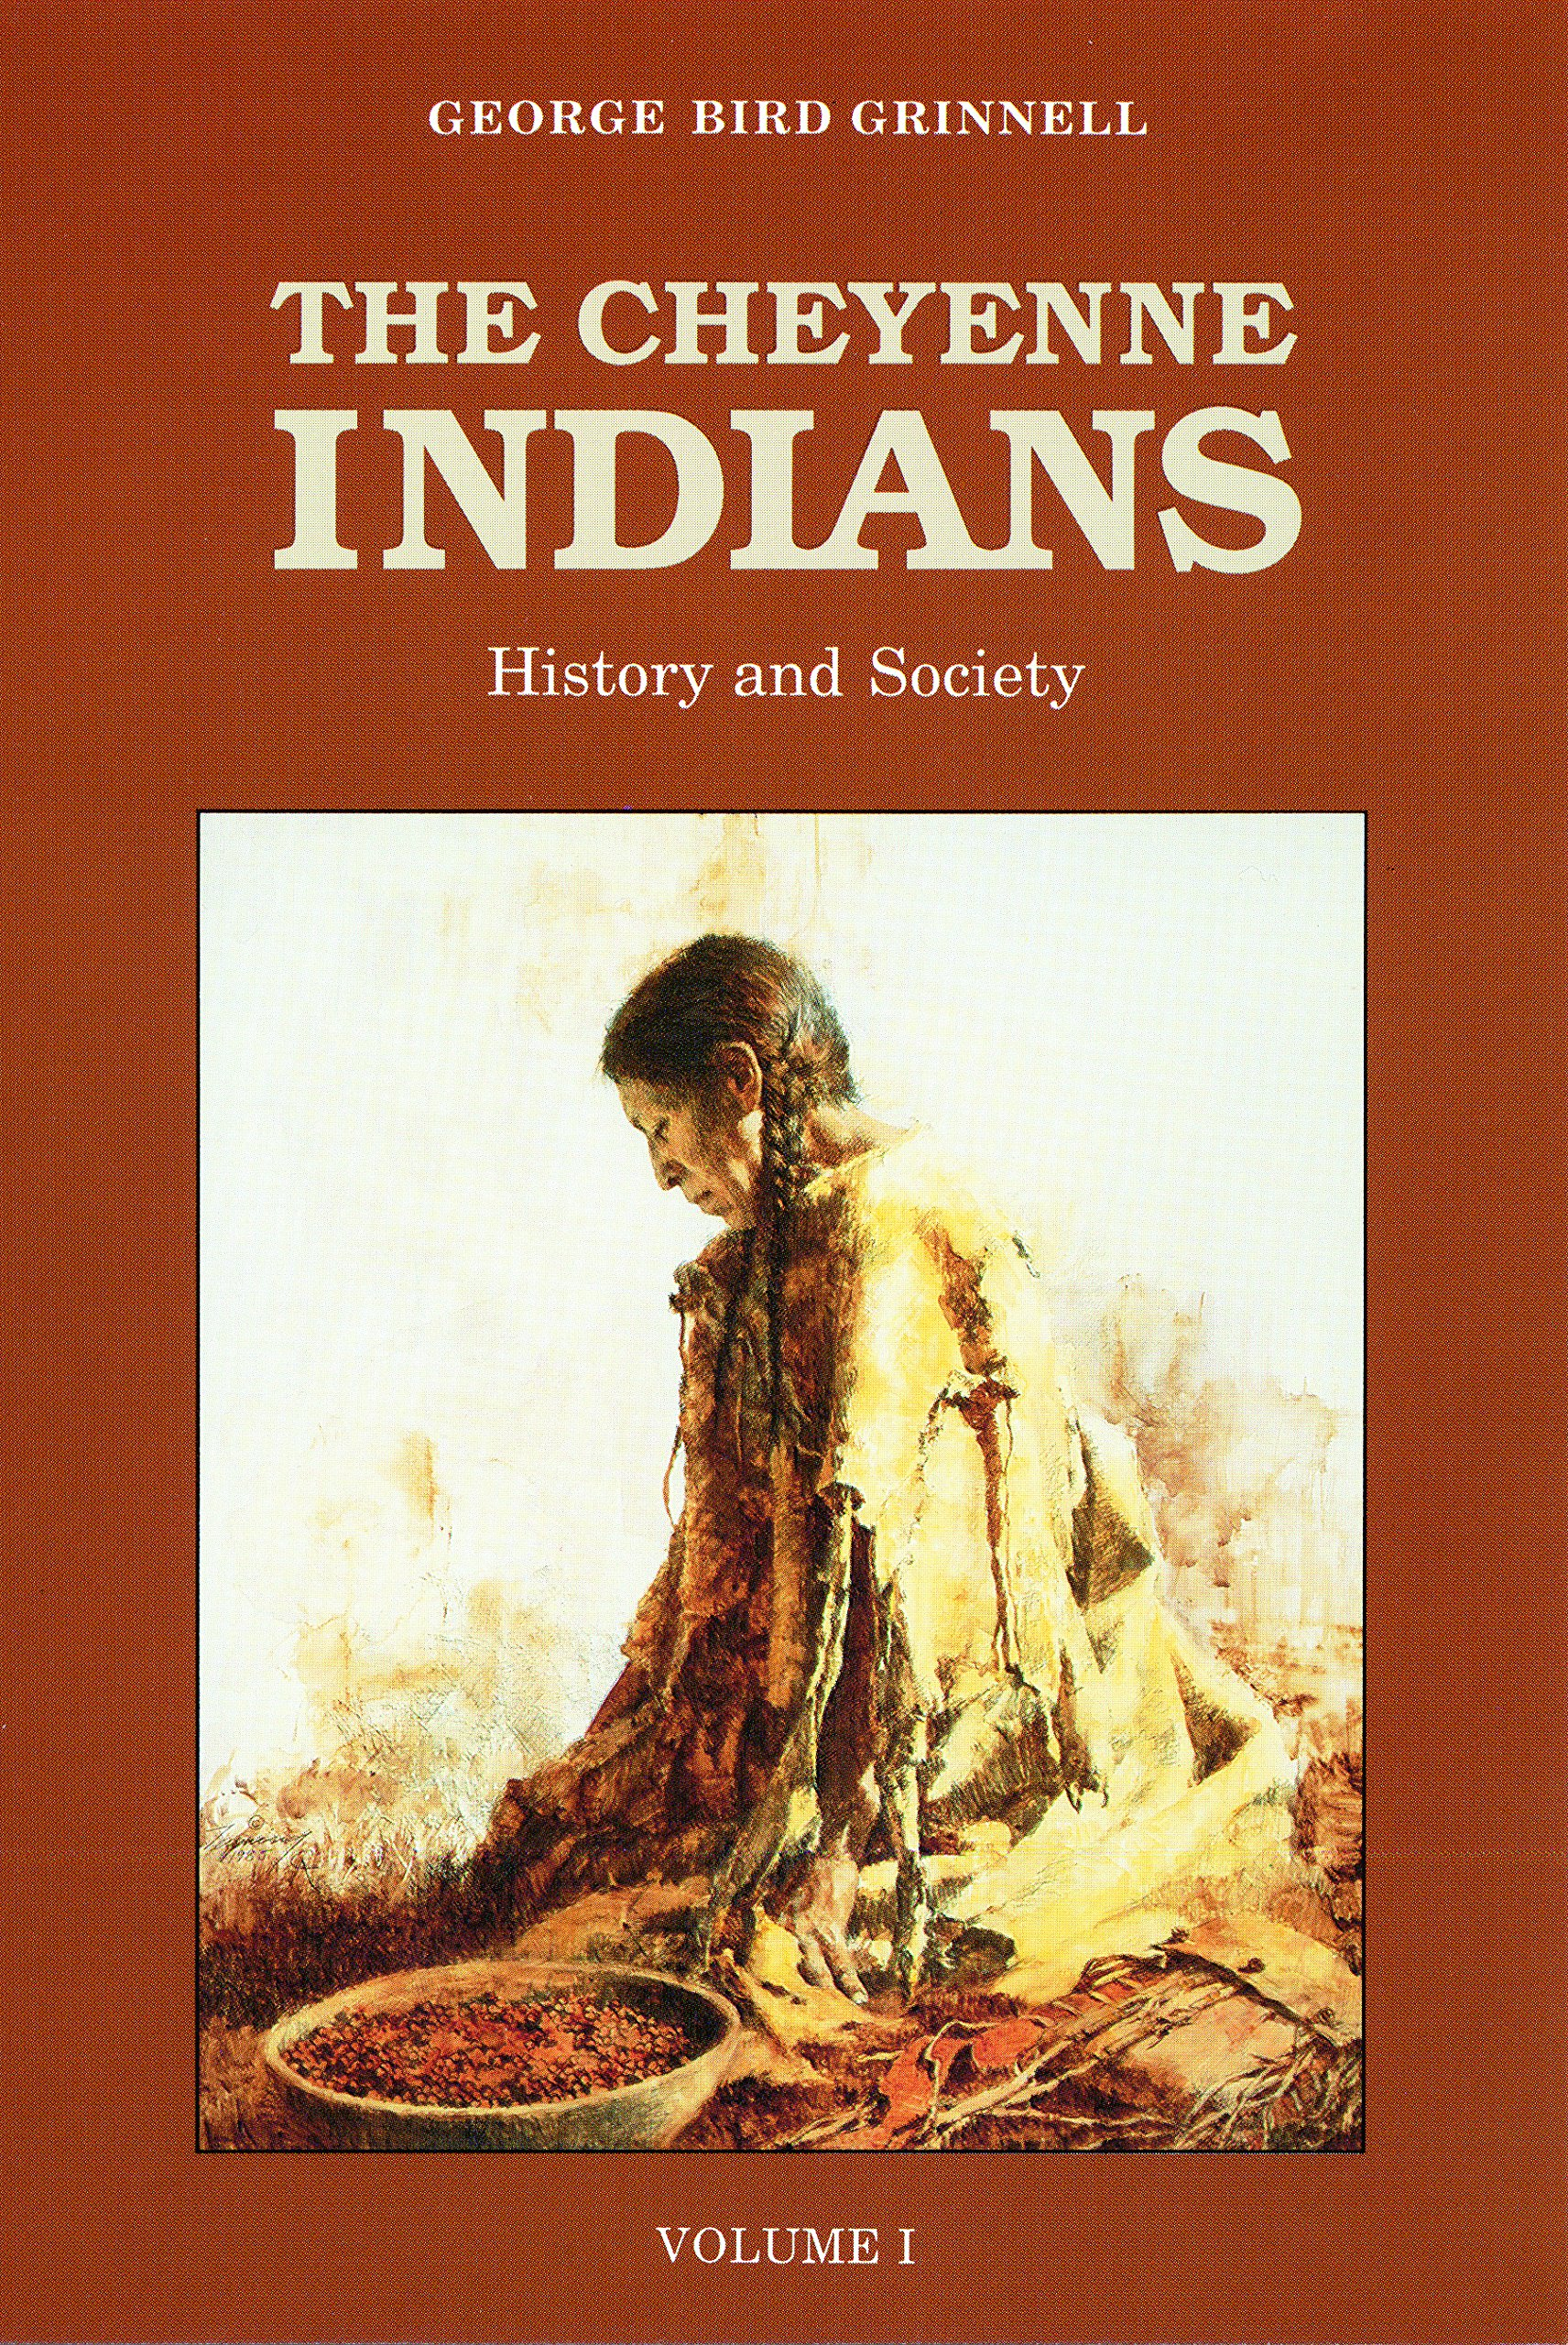 The Cheyenne Indians, Vol. 1: History and Society: George Bird Grinnell:  9780803257719: Amazon.com: Books